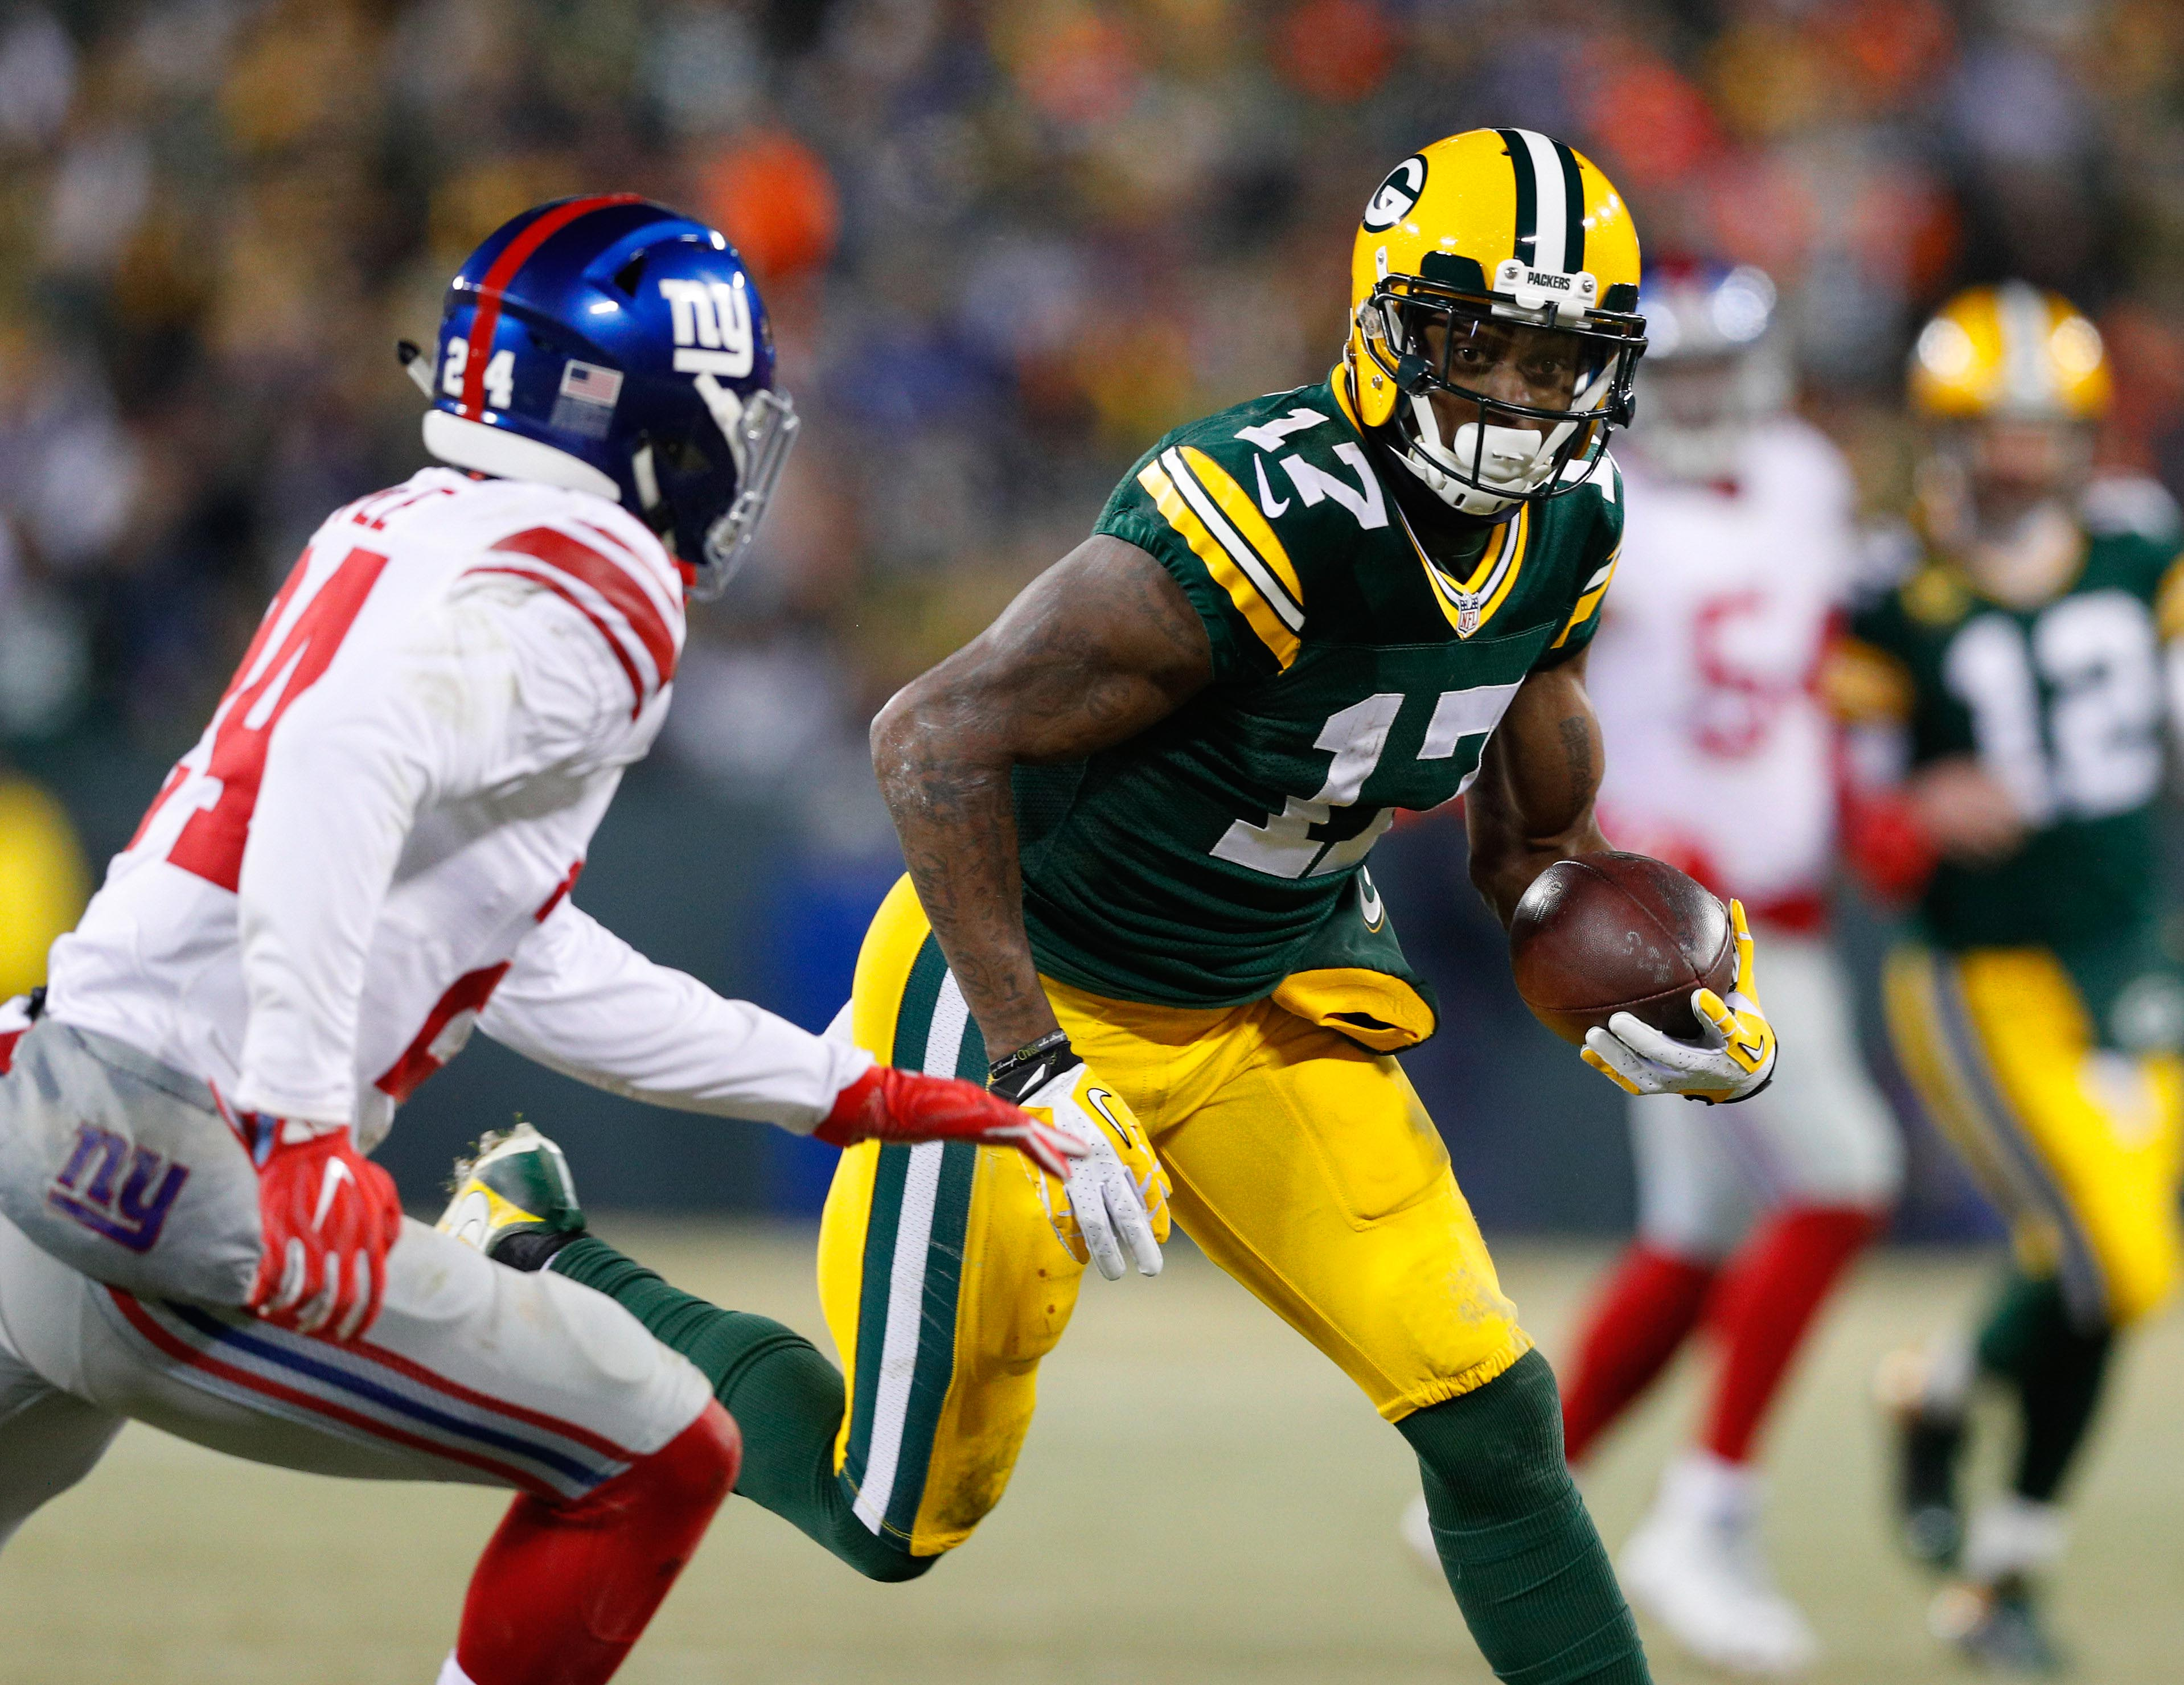 Six Key Factors That Will Determine the Winner of Packers vs Giants